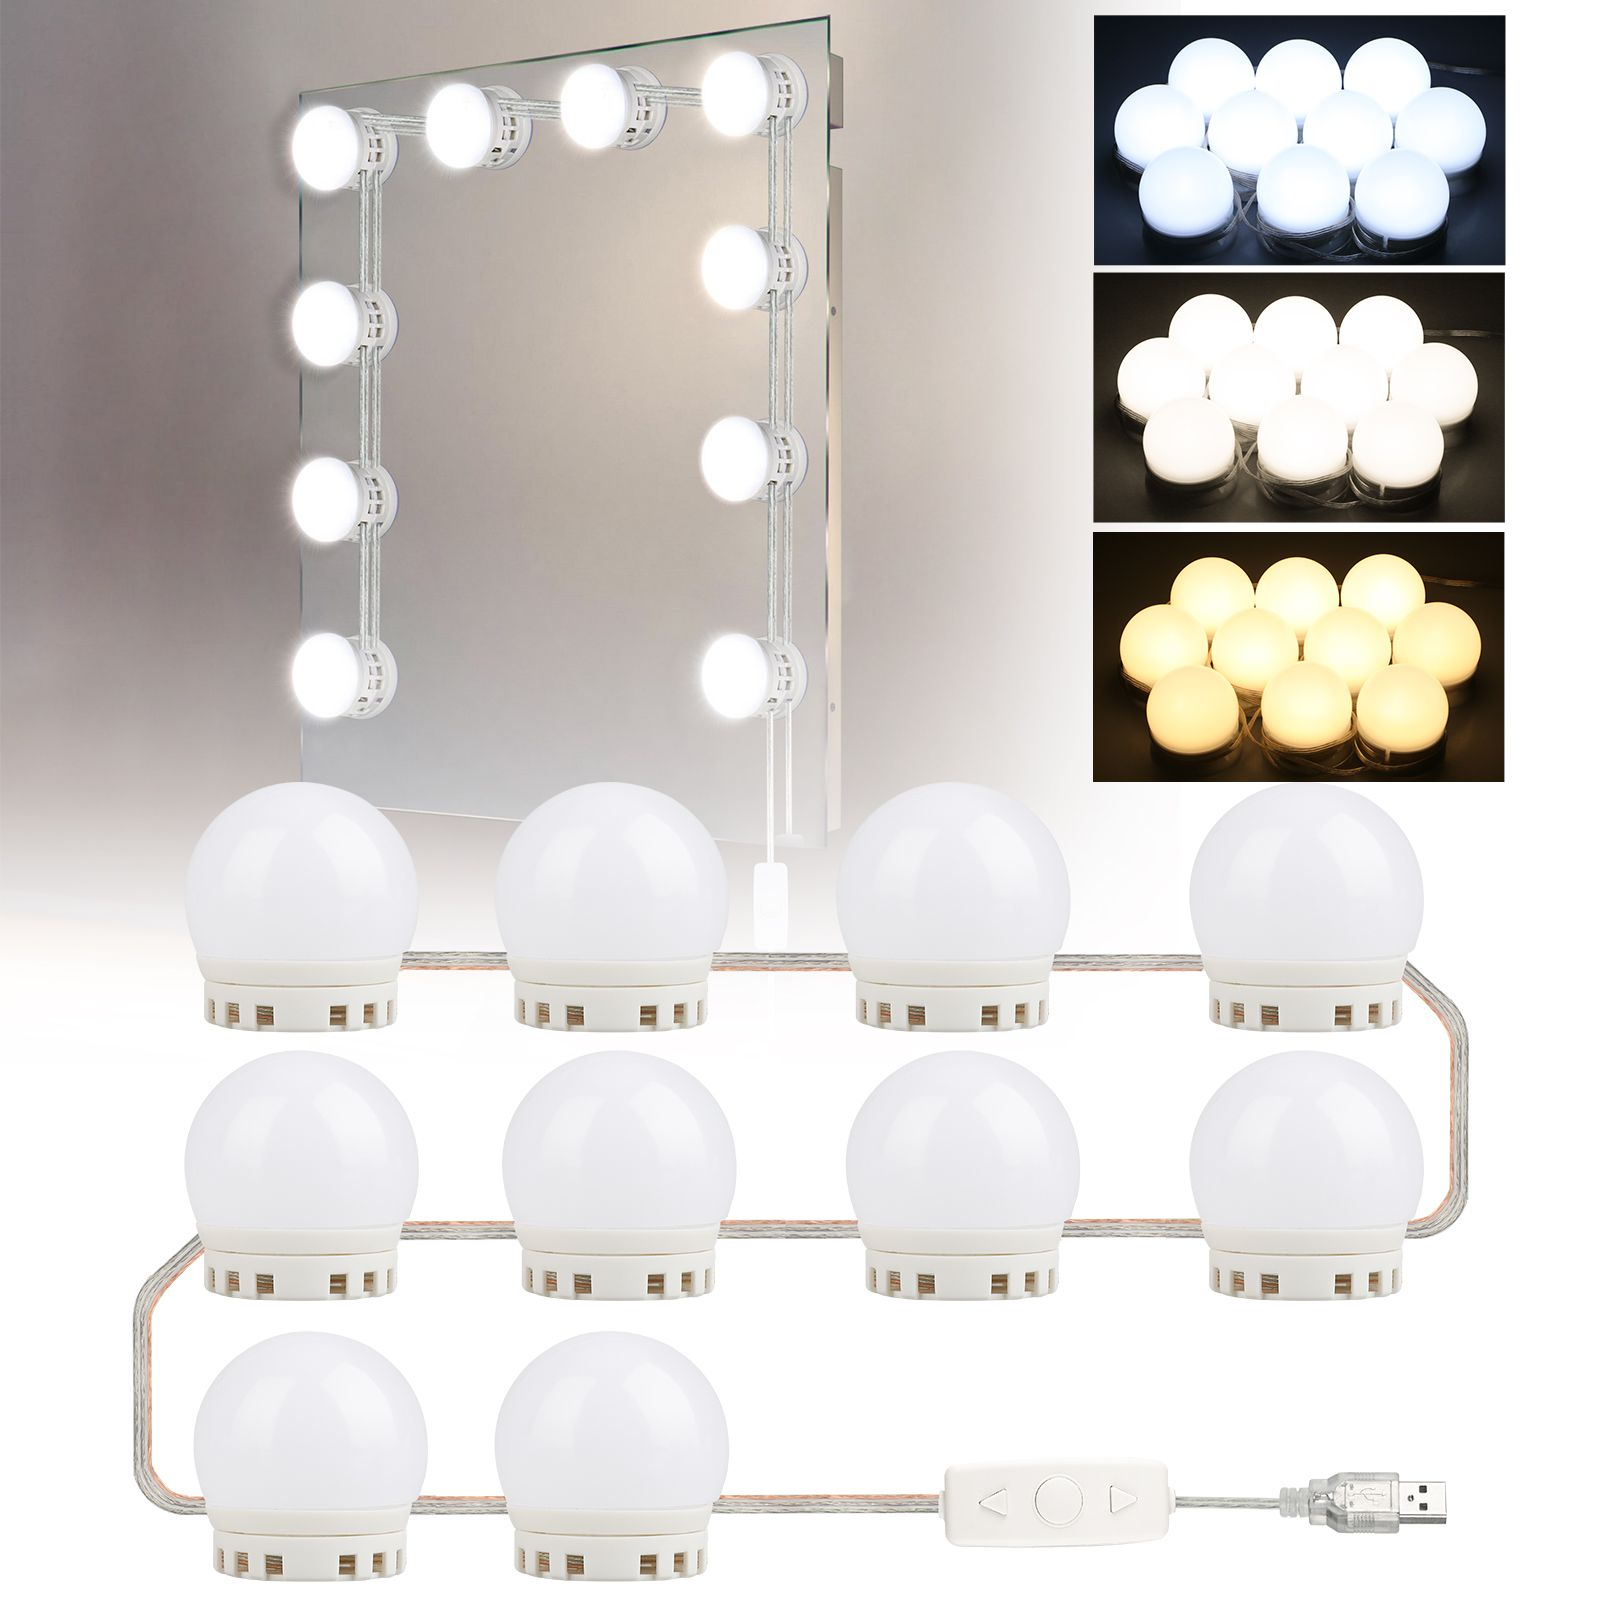 Beauty In 2020 With Images Mirror With Lights Bulb Mirror